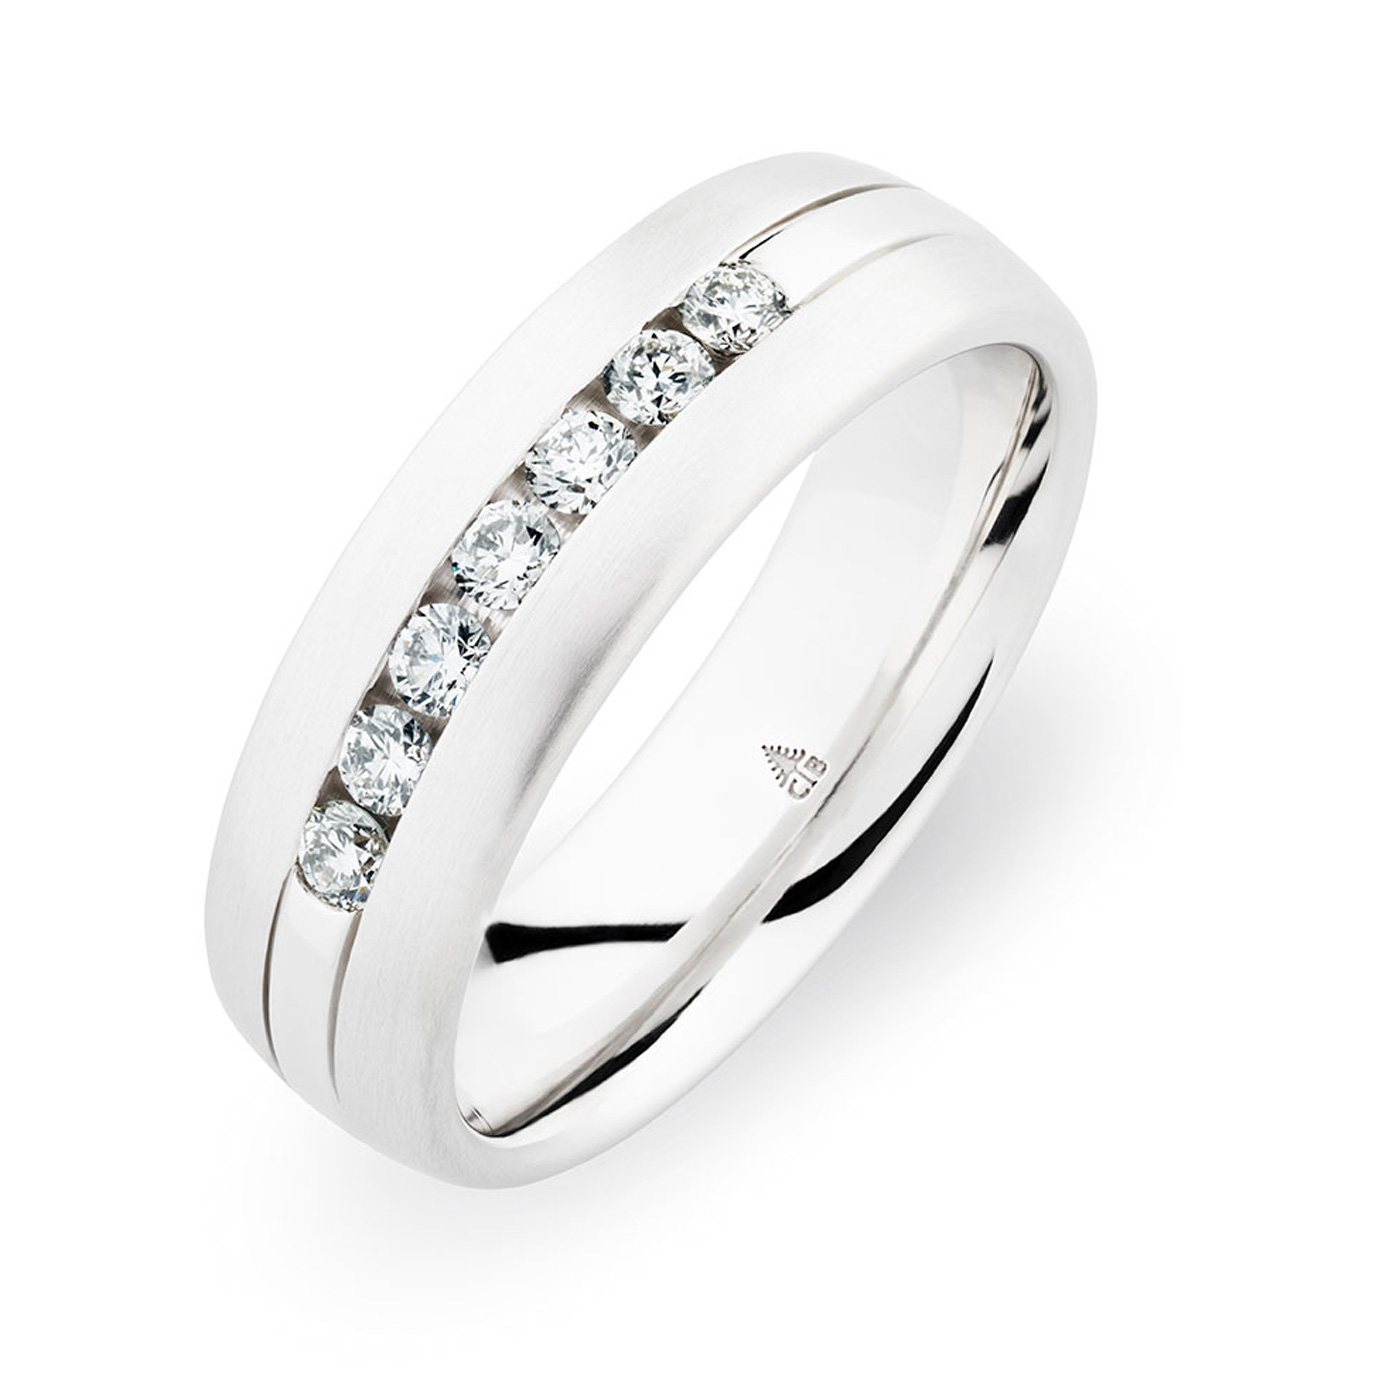 244744 Christian Bauer 18 Karat Diamond  Wedding Ring / Band